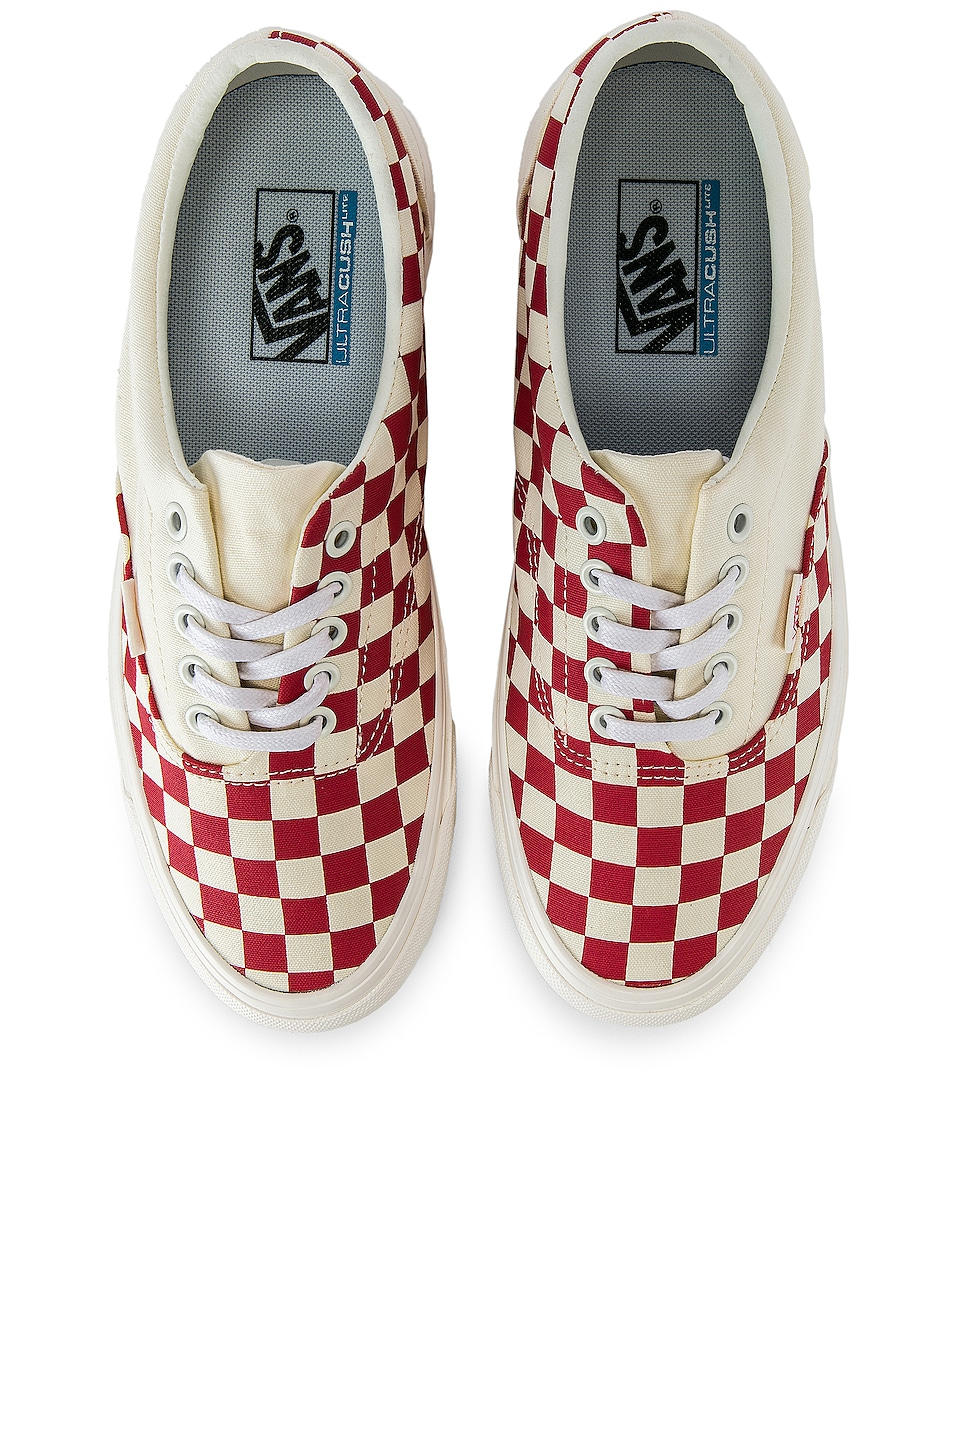 Vans Podium Era Sneaker in Checkboard & Racing Red